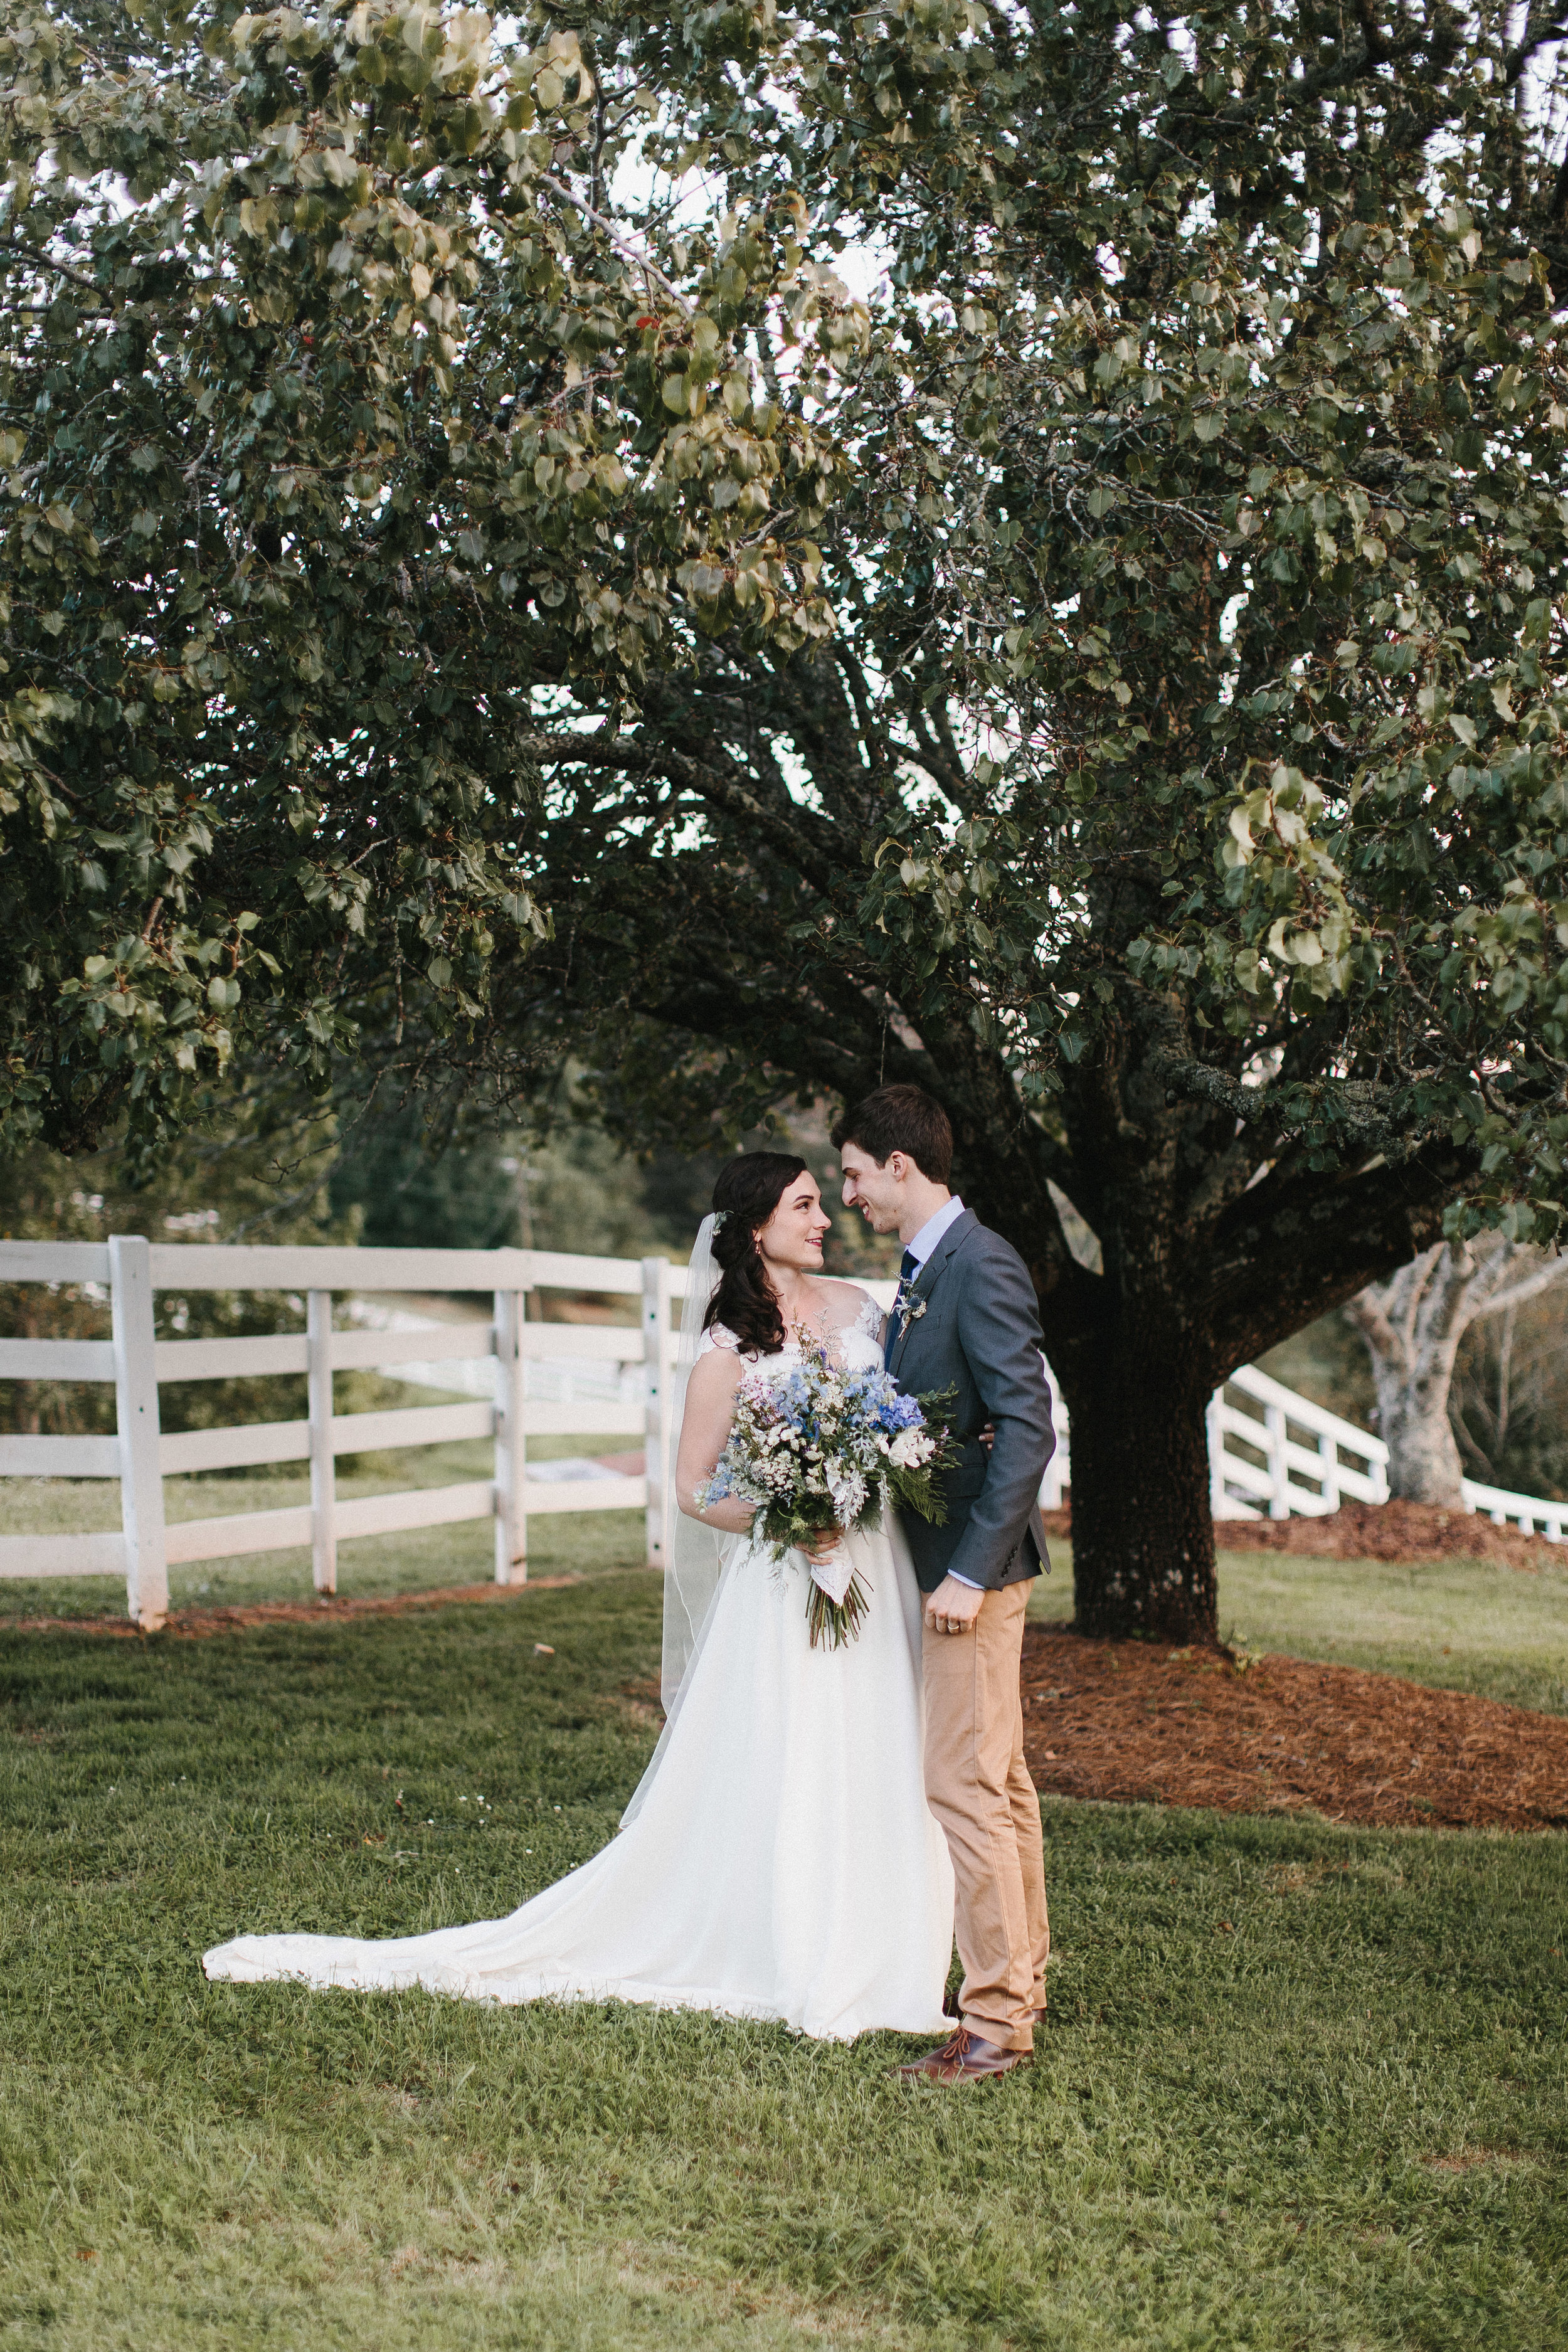 cleveland_georgia_mountain_laurel_farm_natural_classic_timeless_documentary_candid_wedding_emotional_photojournalism_river_west_1781.jpg